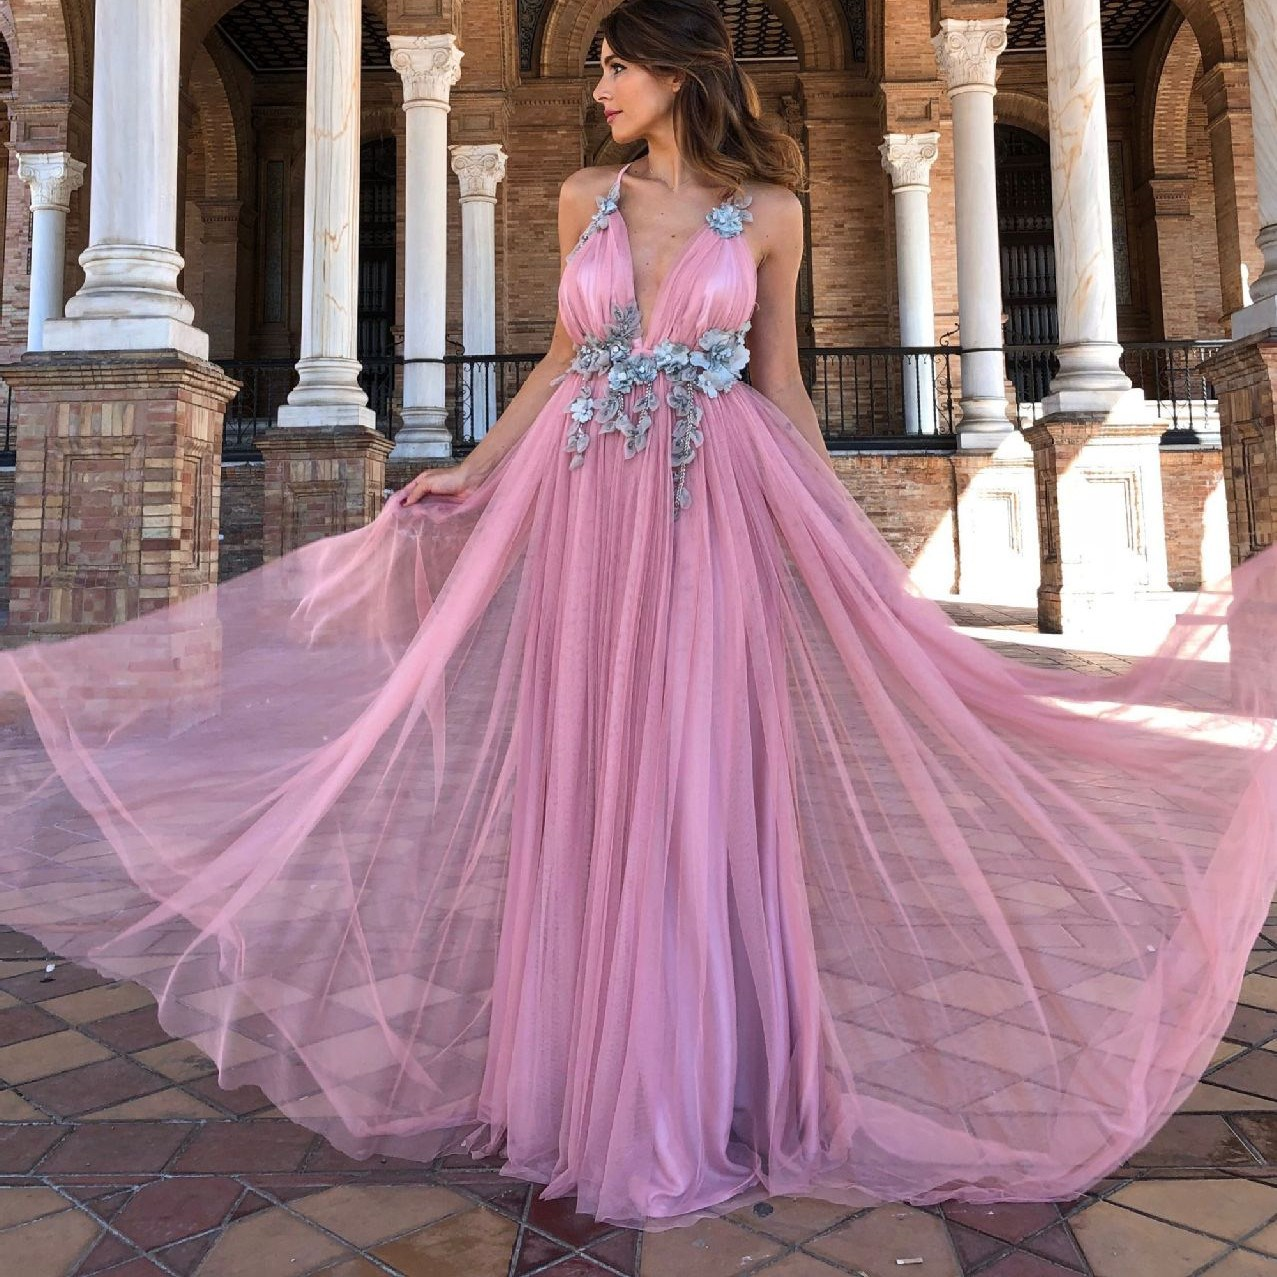 2019 Sexy Spaghetti Strap Deep V Tulle Long Dress Elegant Backless Court Train Flowers A Line Dress Special Occasion Prom Gowns